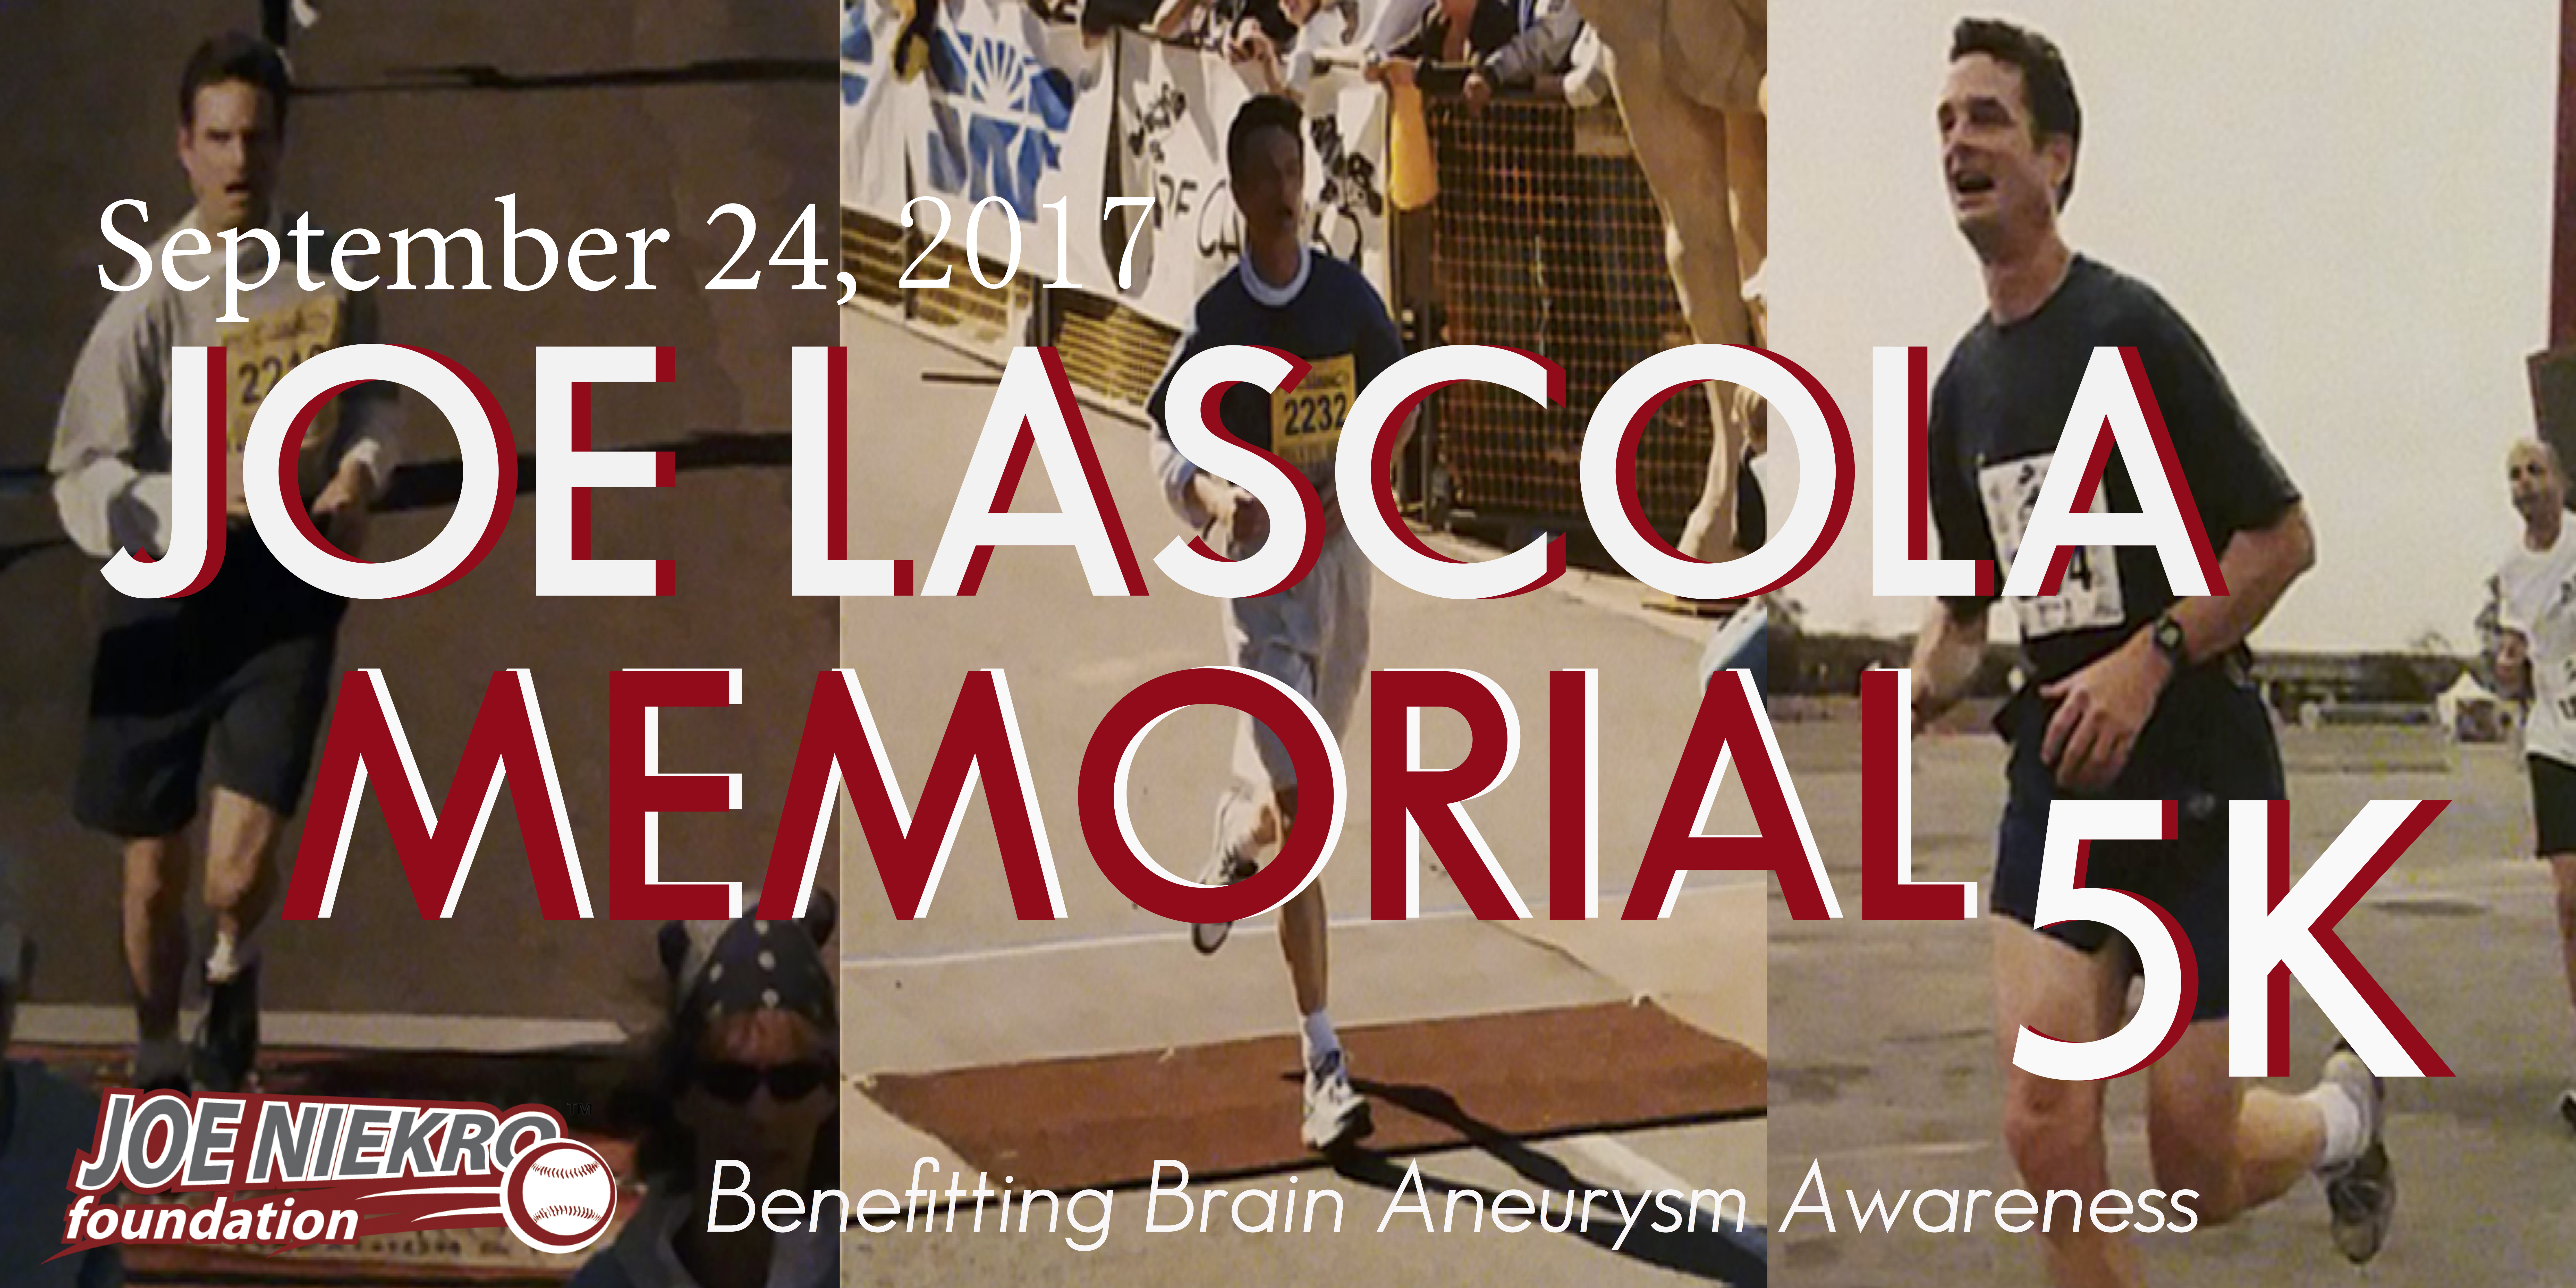 https://www.joeniekrofoundation.com/events/past-events/pastevents2017/joe-lascola-memorial-walk/attachment/lascola-2017-walk-banner-2/